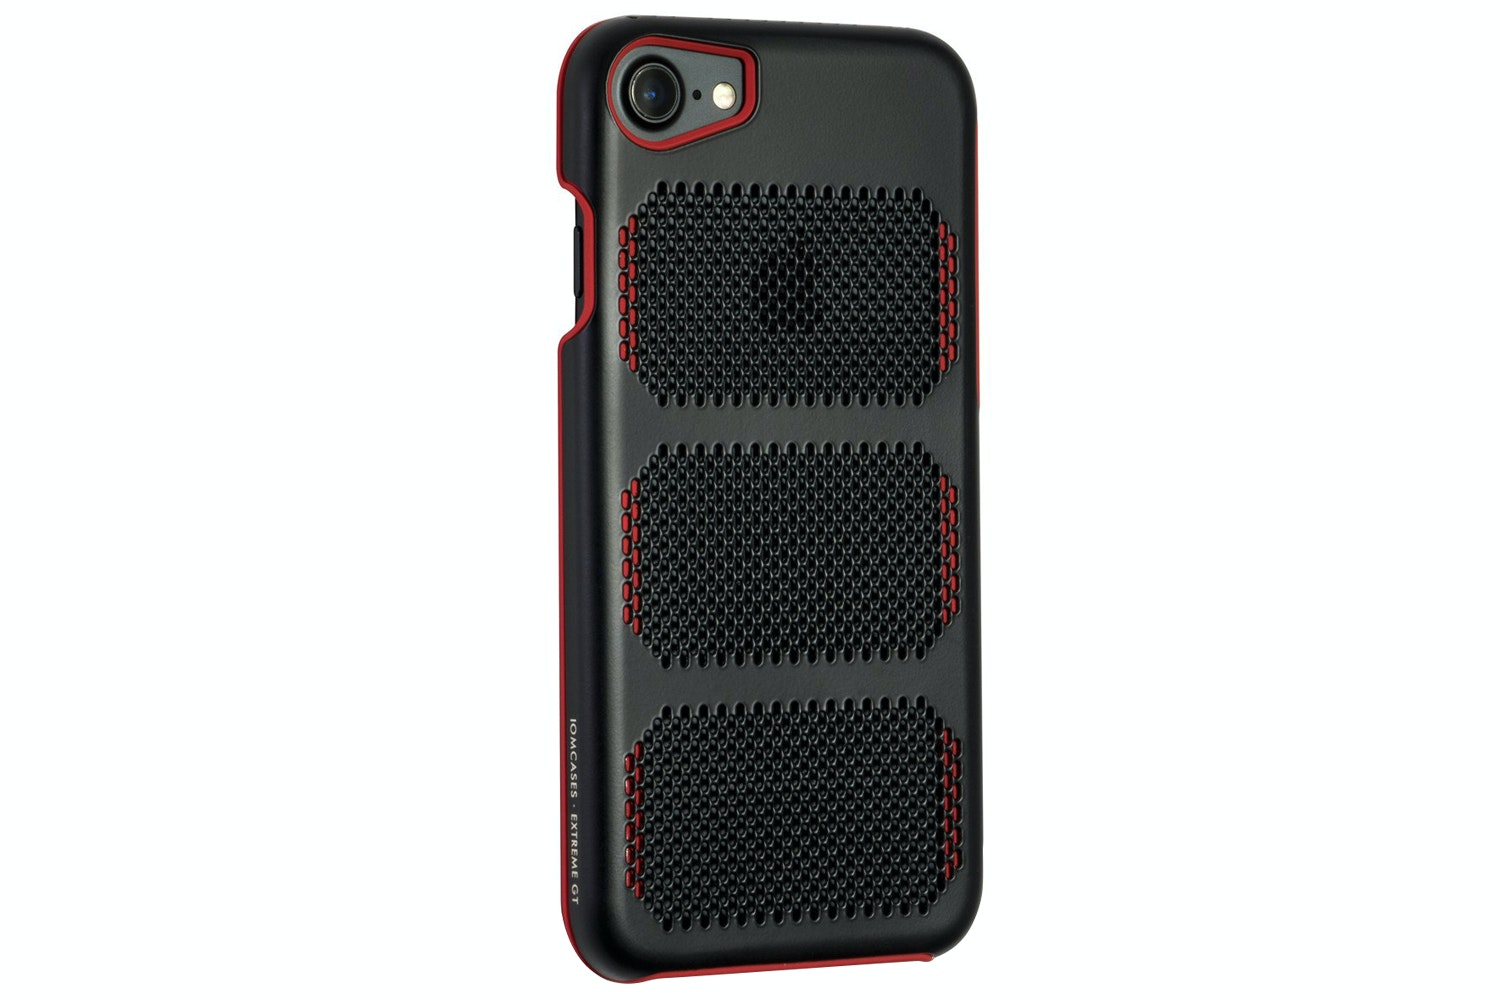 IOM Extreme GT iPhone 7 Plus Case | Black & Red